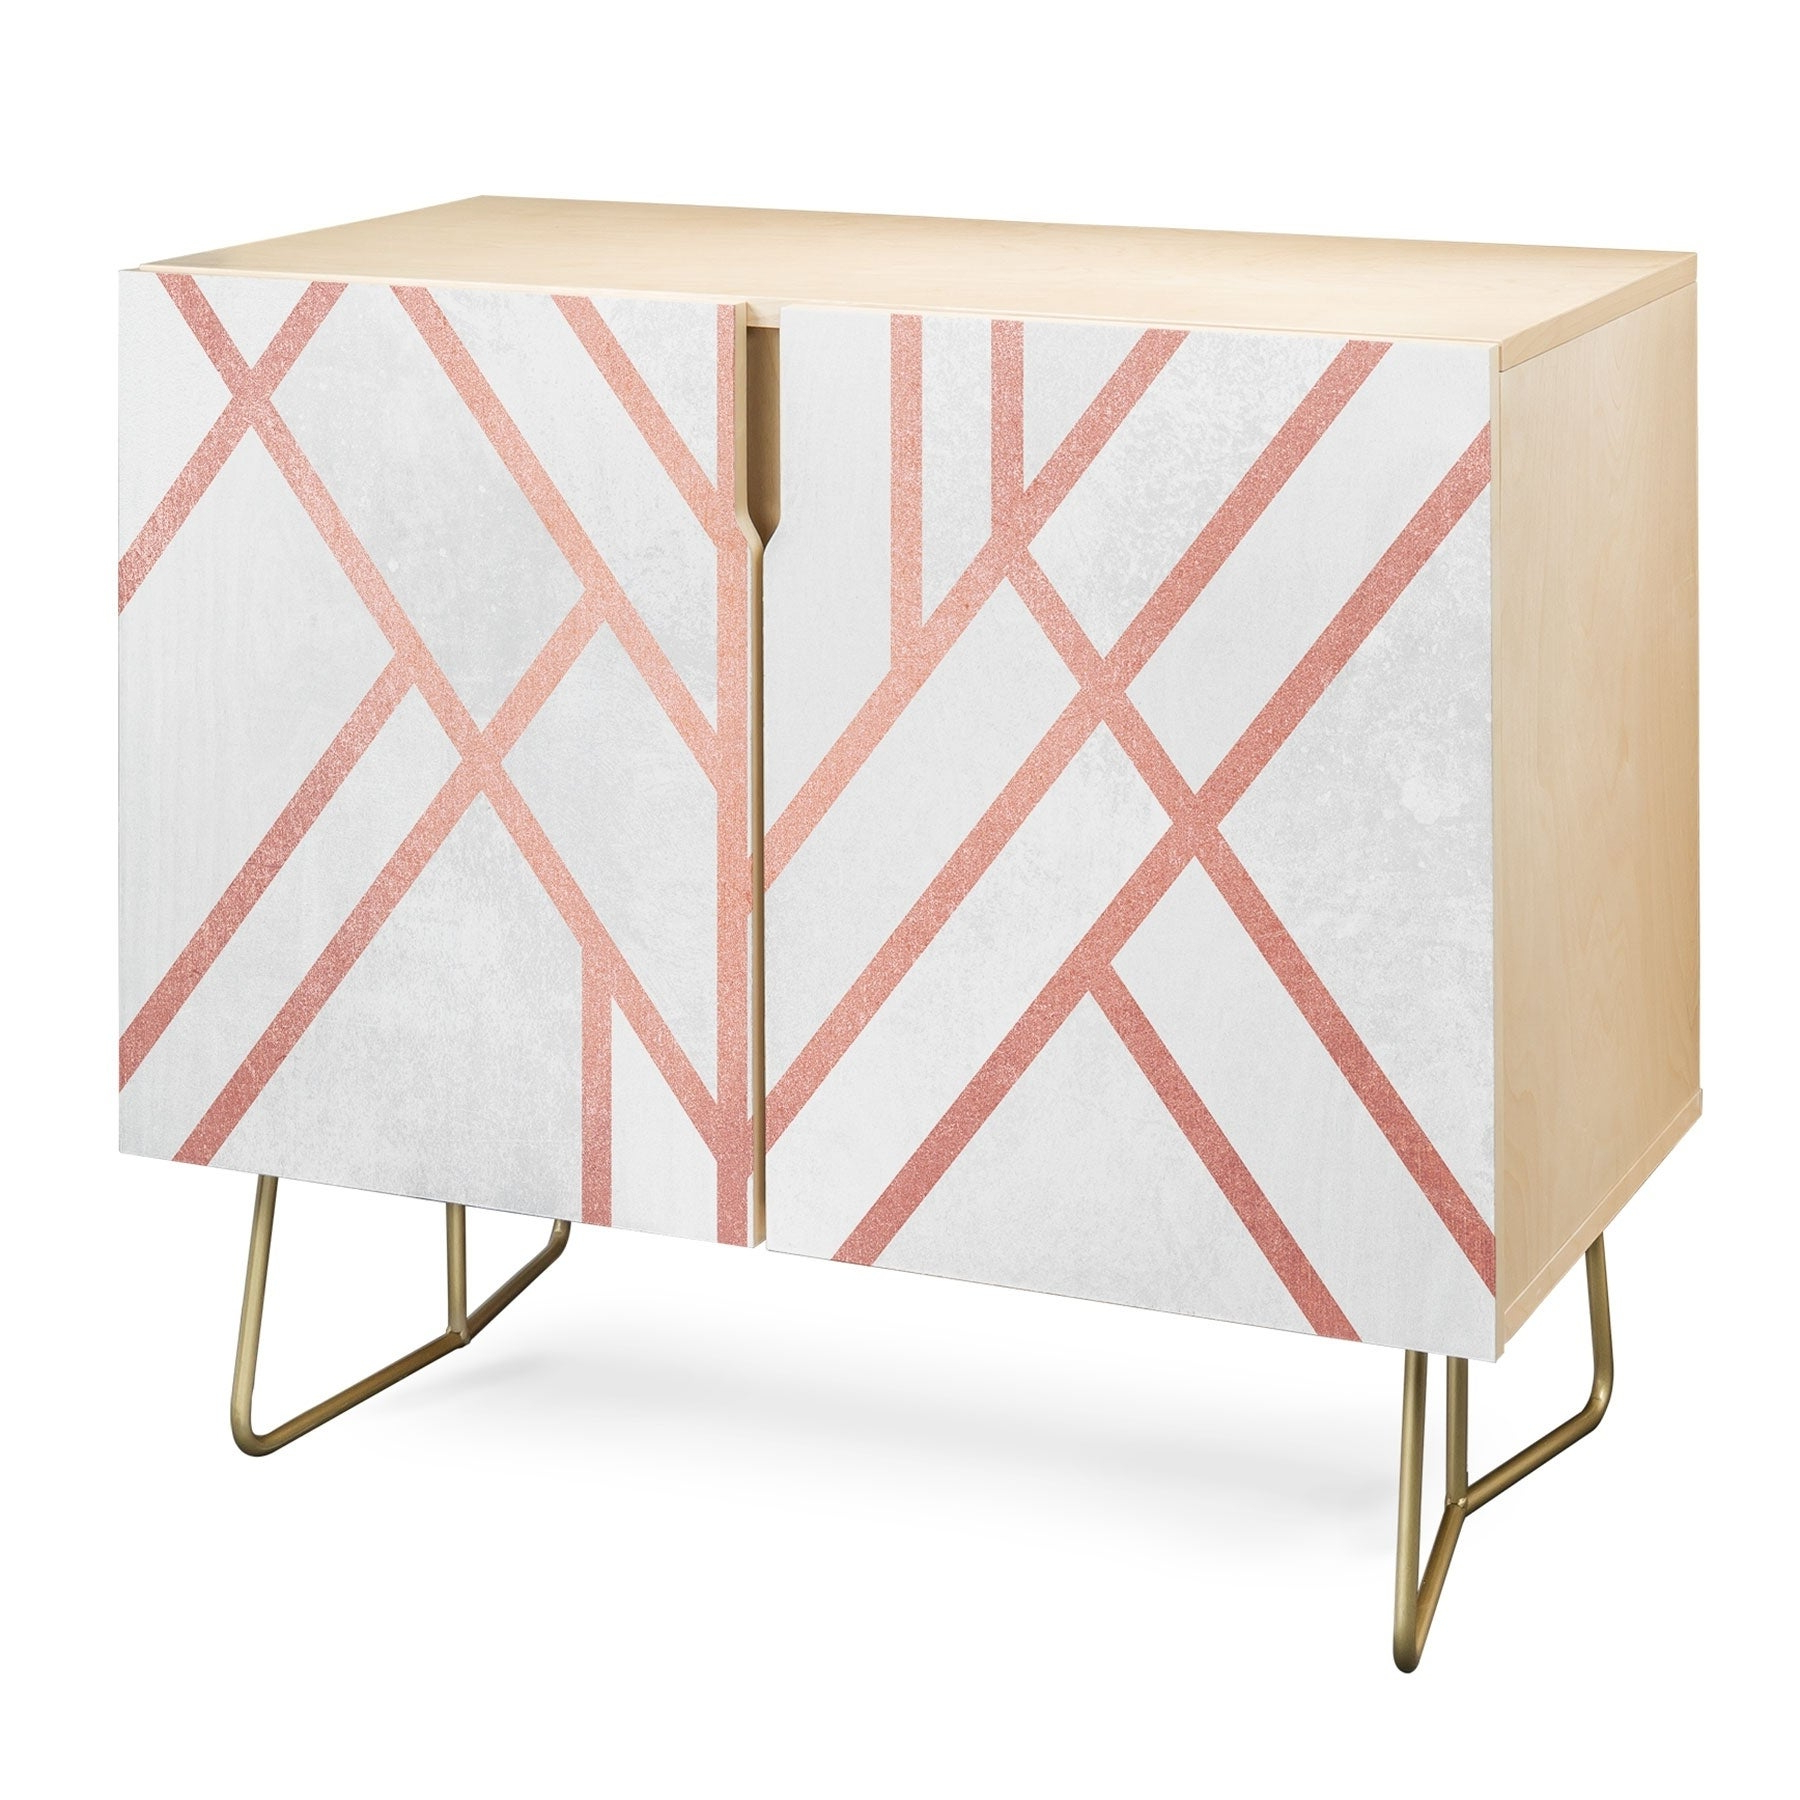 Deny Designs Pink And White Geometric Credenza (birch Or Walnut, 3 Leg Options) Intended For Pink And White Geometric Buffets (View 2 of 20)